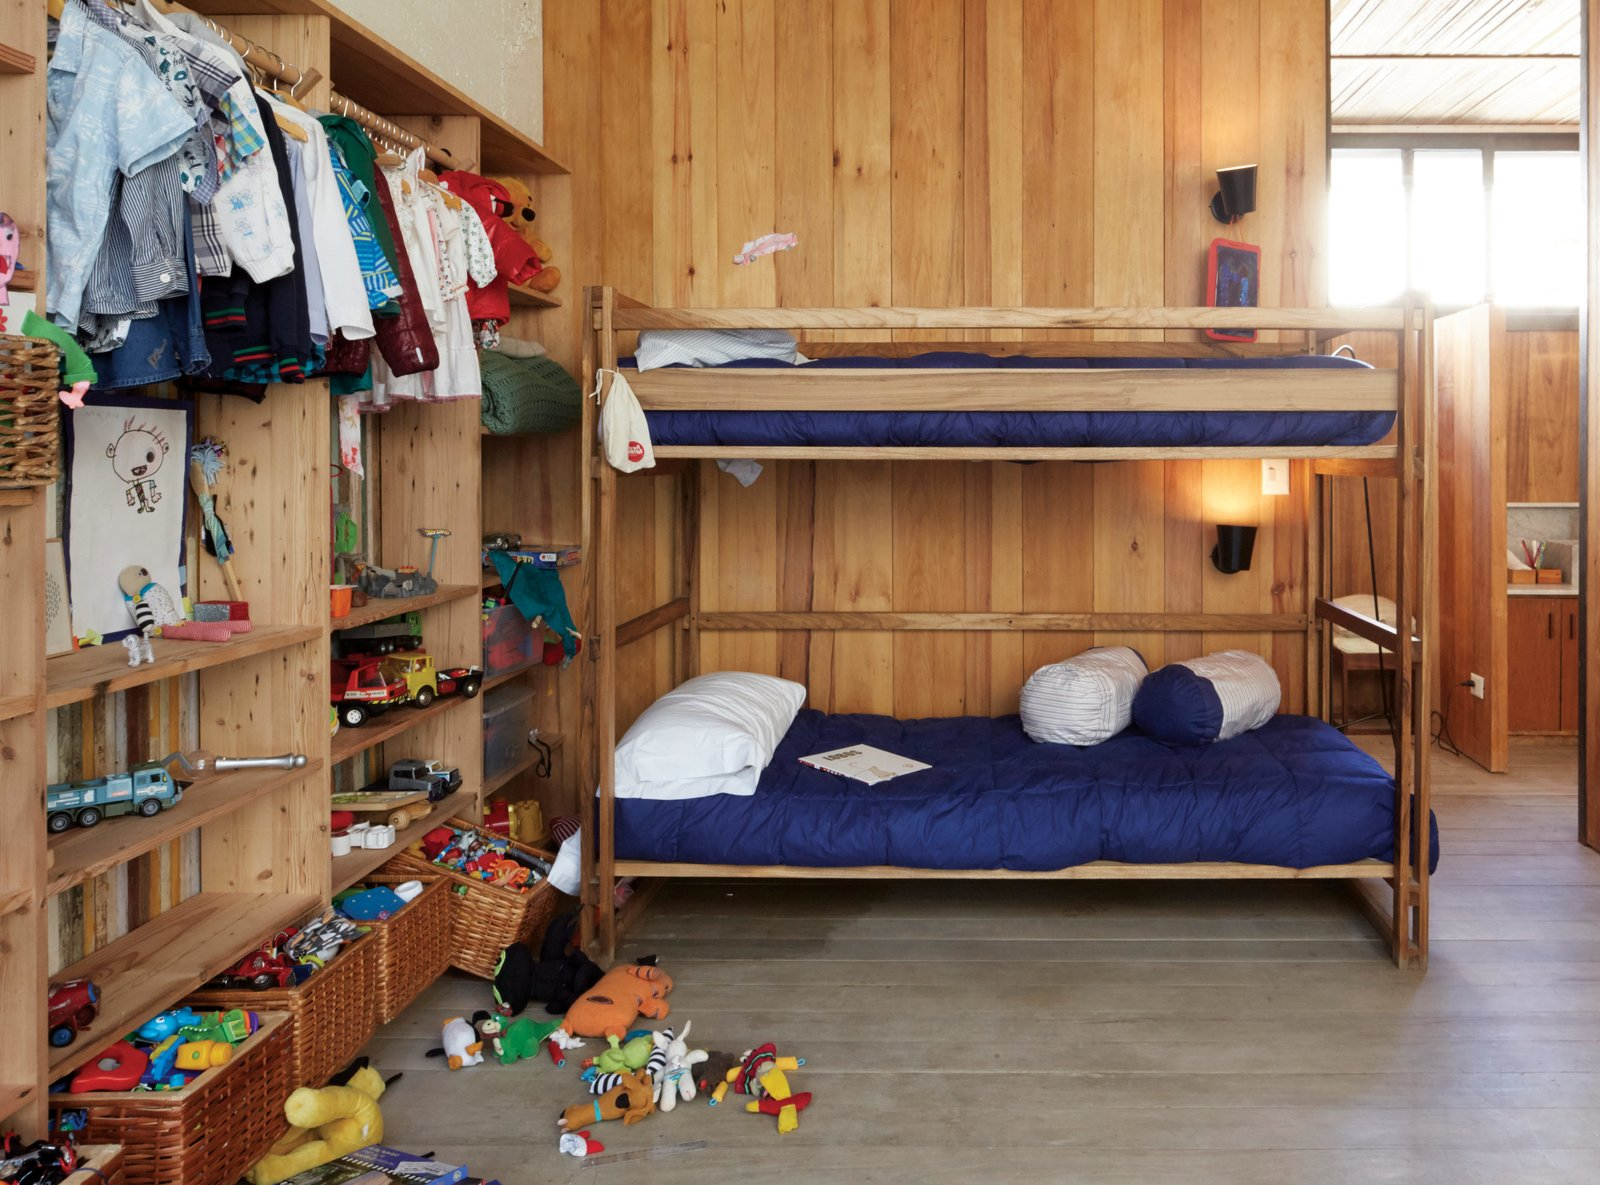 The children's bedroom features NET bunk beds and storage baskets from Mono, the design shop of Sticotti's wife, Mercedes Hernáez.